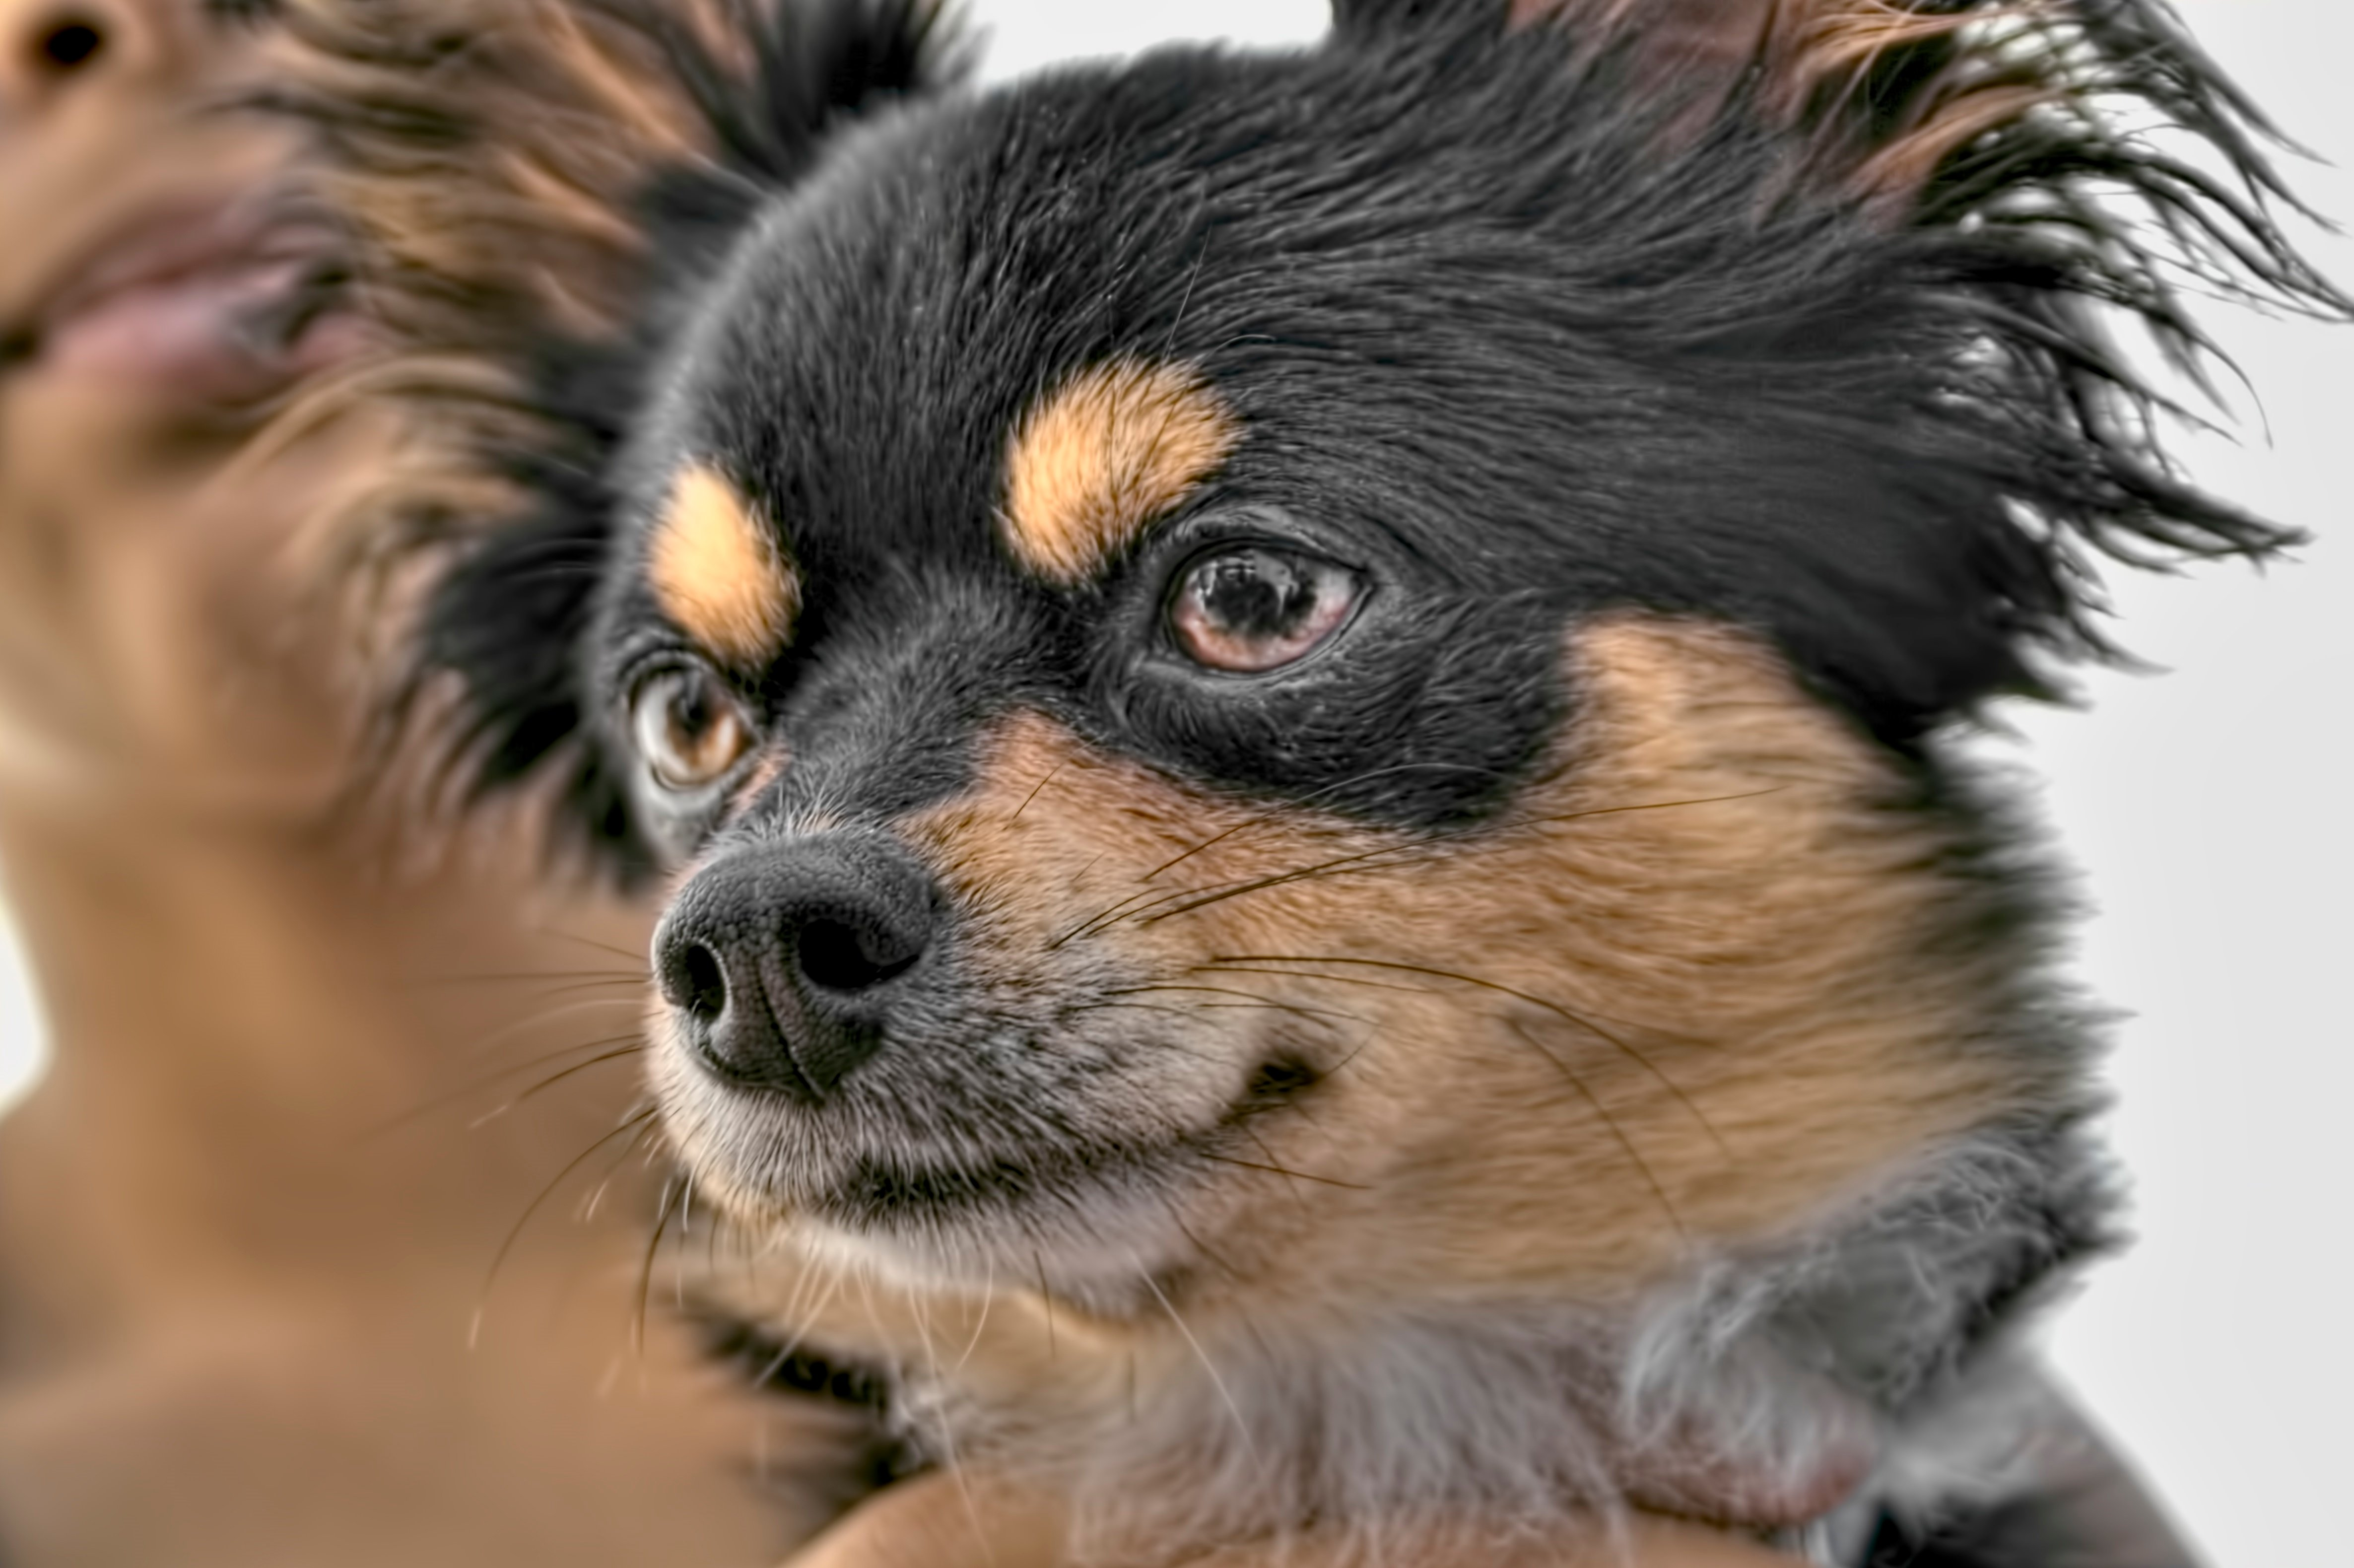 Six months old Affenhuahua is a small dog. It is a cross between the Affenpinscher and the Chihuahua.